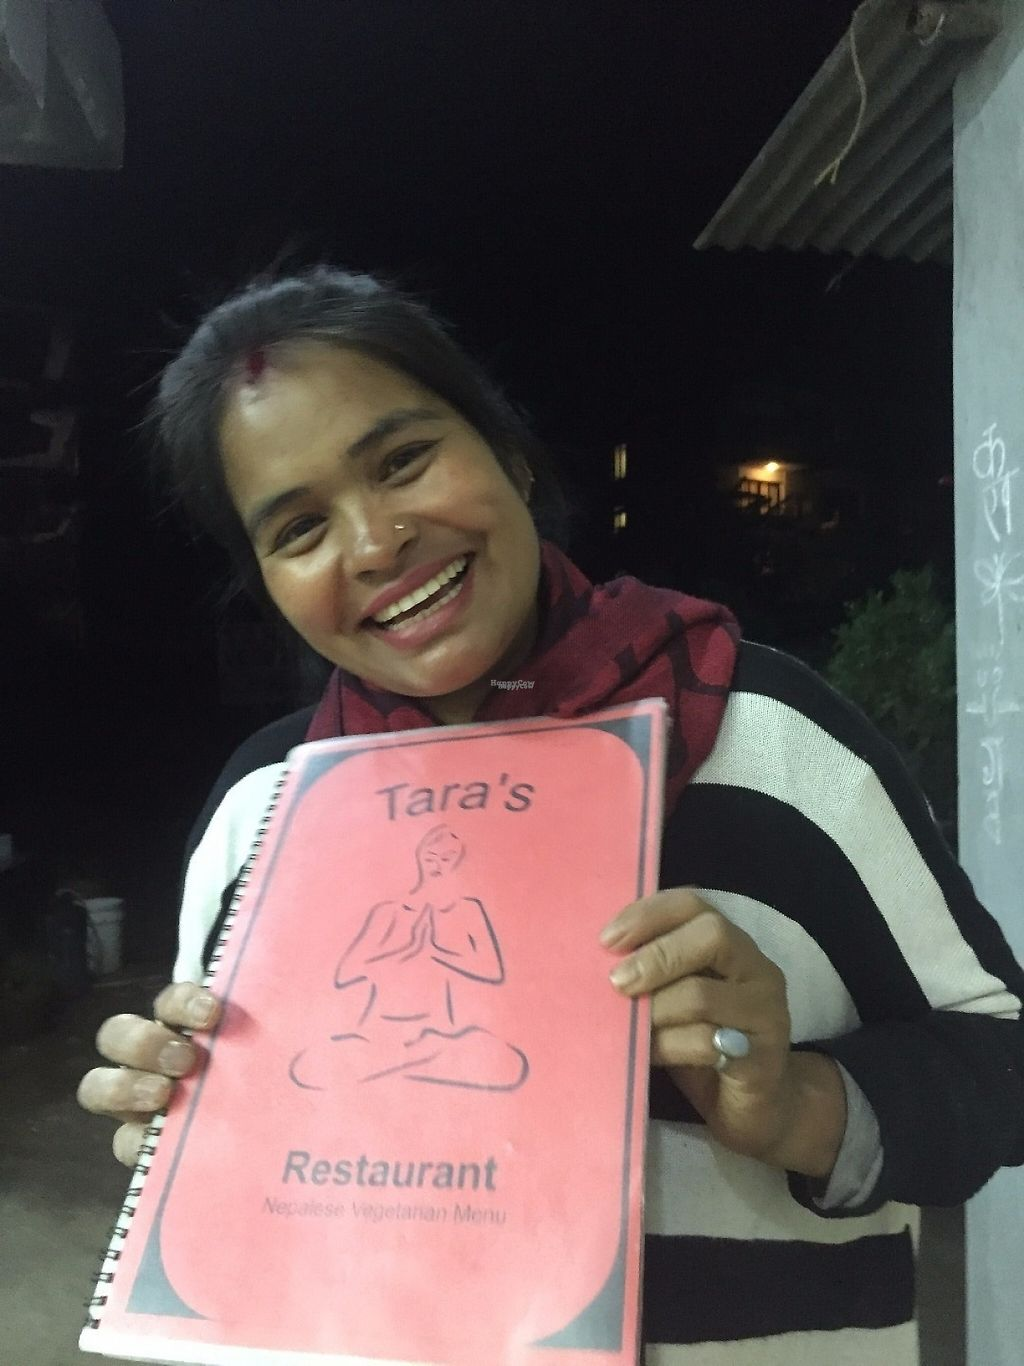 """Photo of Tara's Vegetarian Restaurant  by <a href=""""/members/profile/TomSkelton-Hiller"""">TomSkelton-Hiller</a> <br/>The lovely host! <br/> April 8, 2017  - <a href='/contact/abuse/image/72047/245689'>Report</a>"""